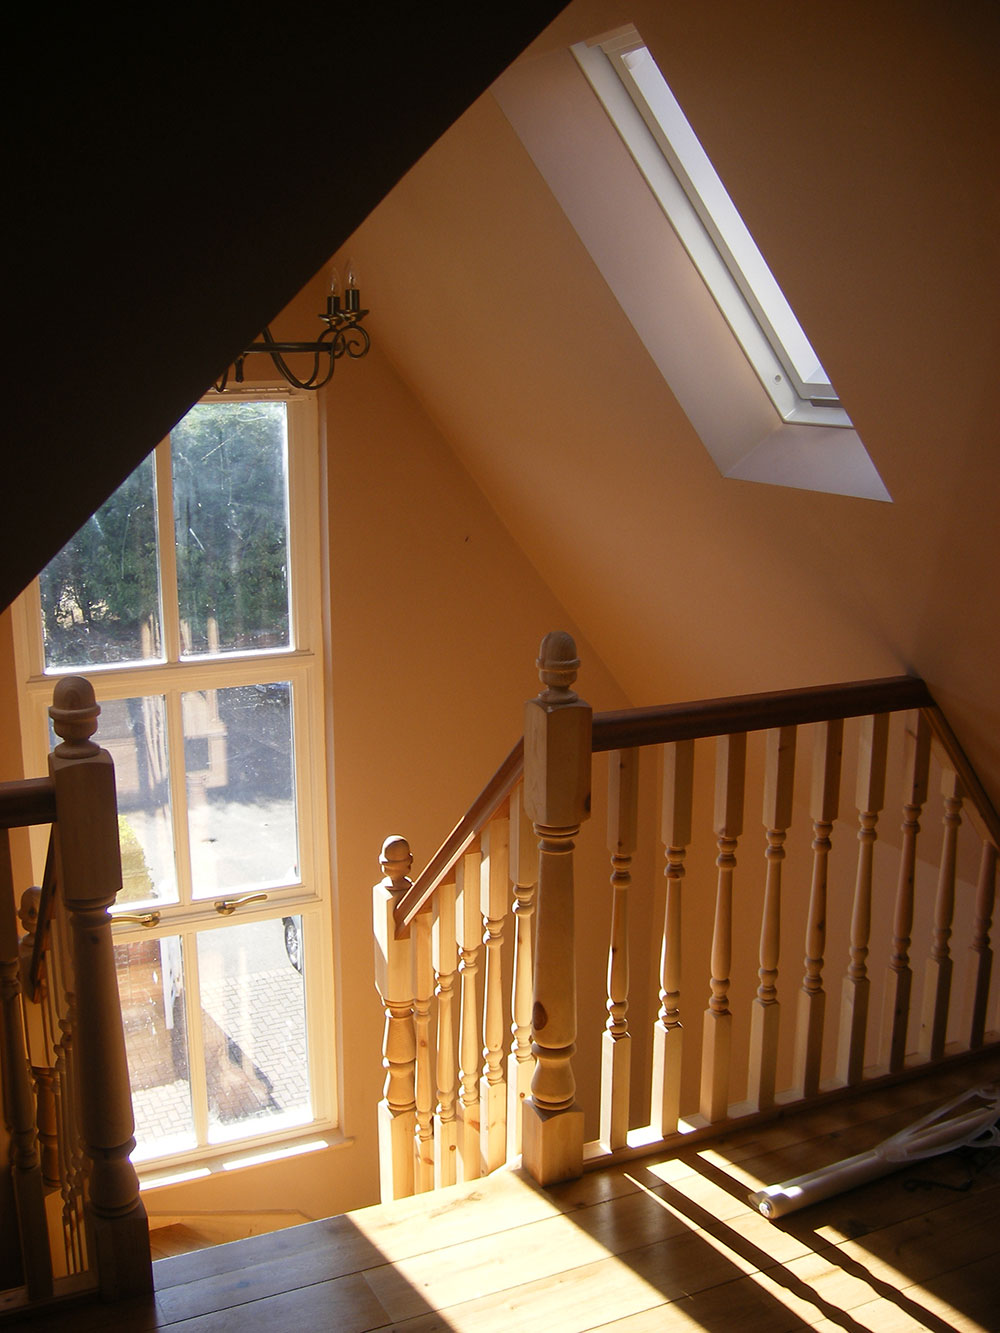 New staircase accessing the loft conversion